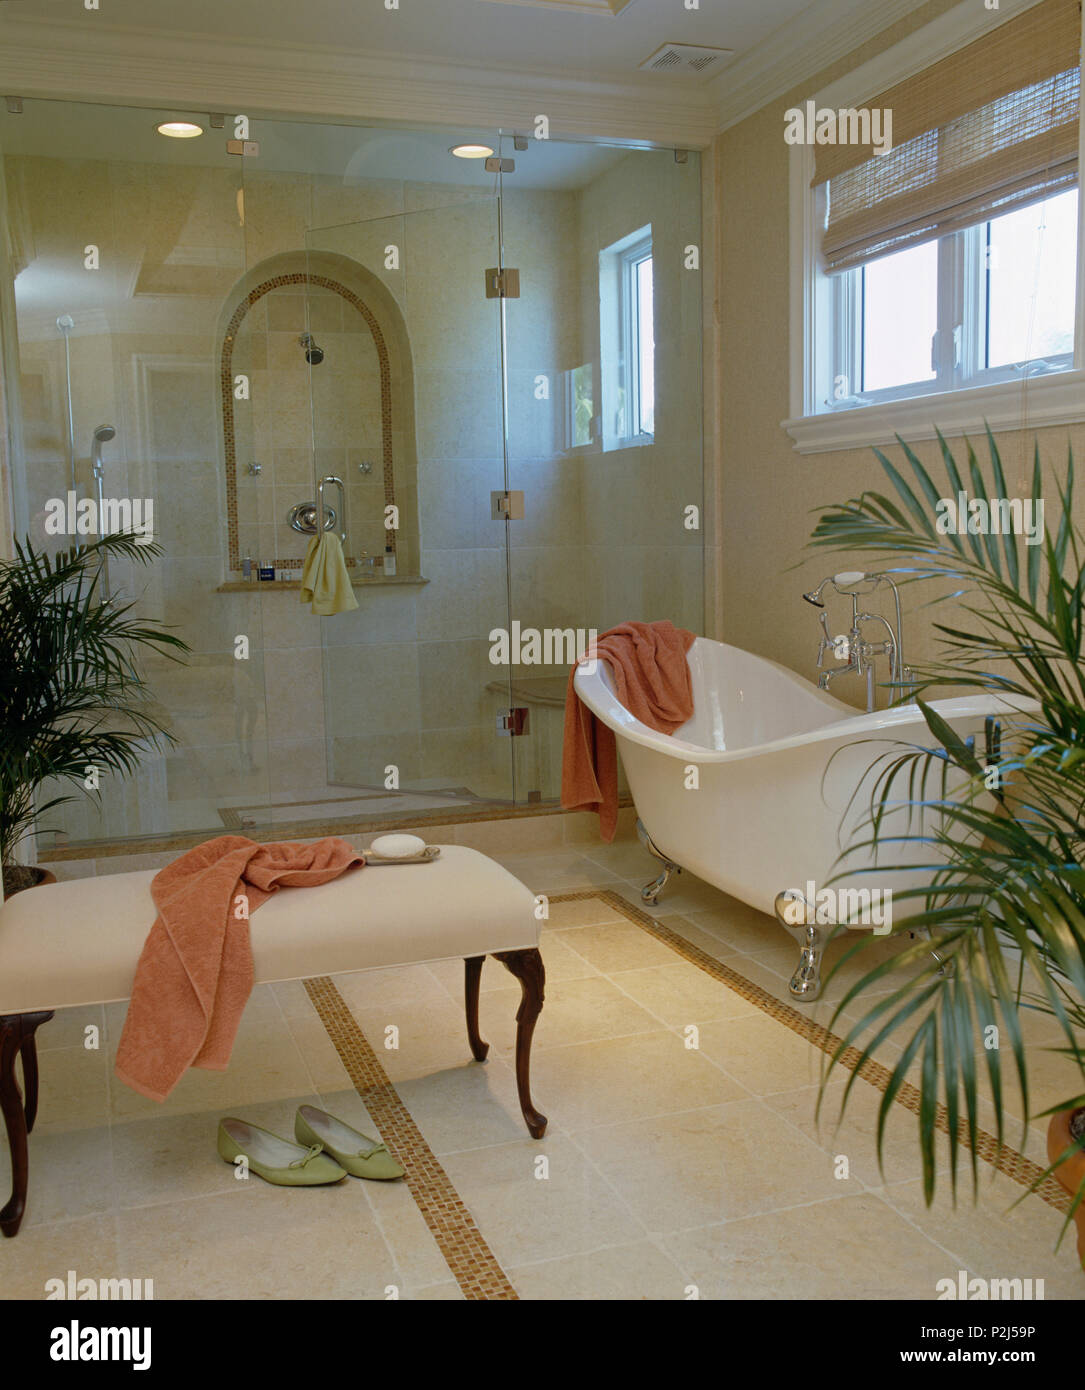 Cream upholstered stool and slipper bath in modern bathroom with ...